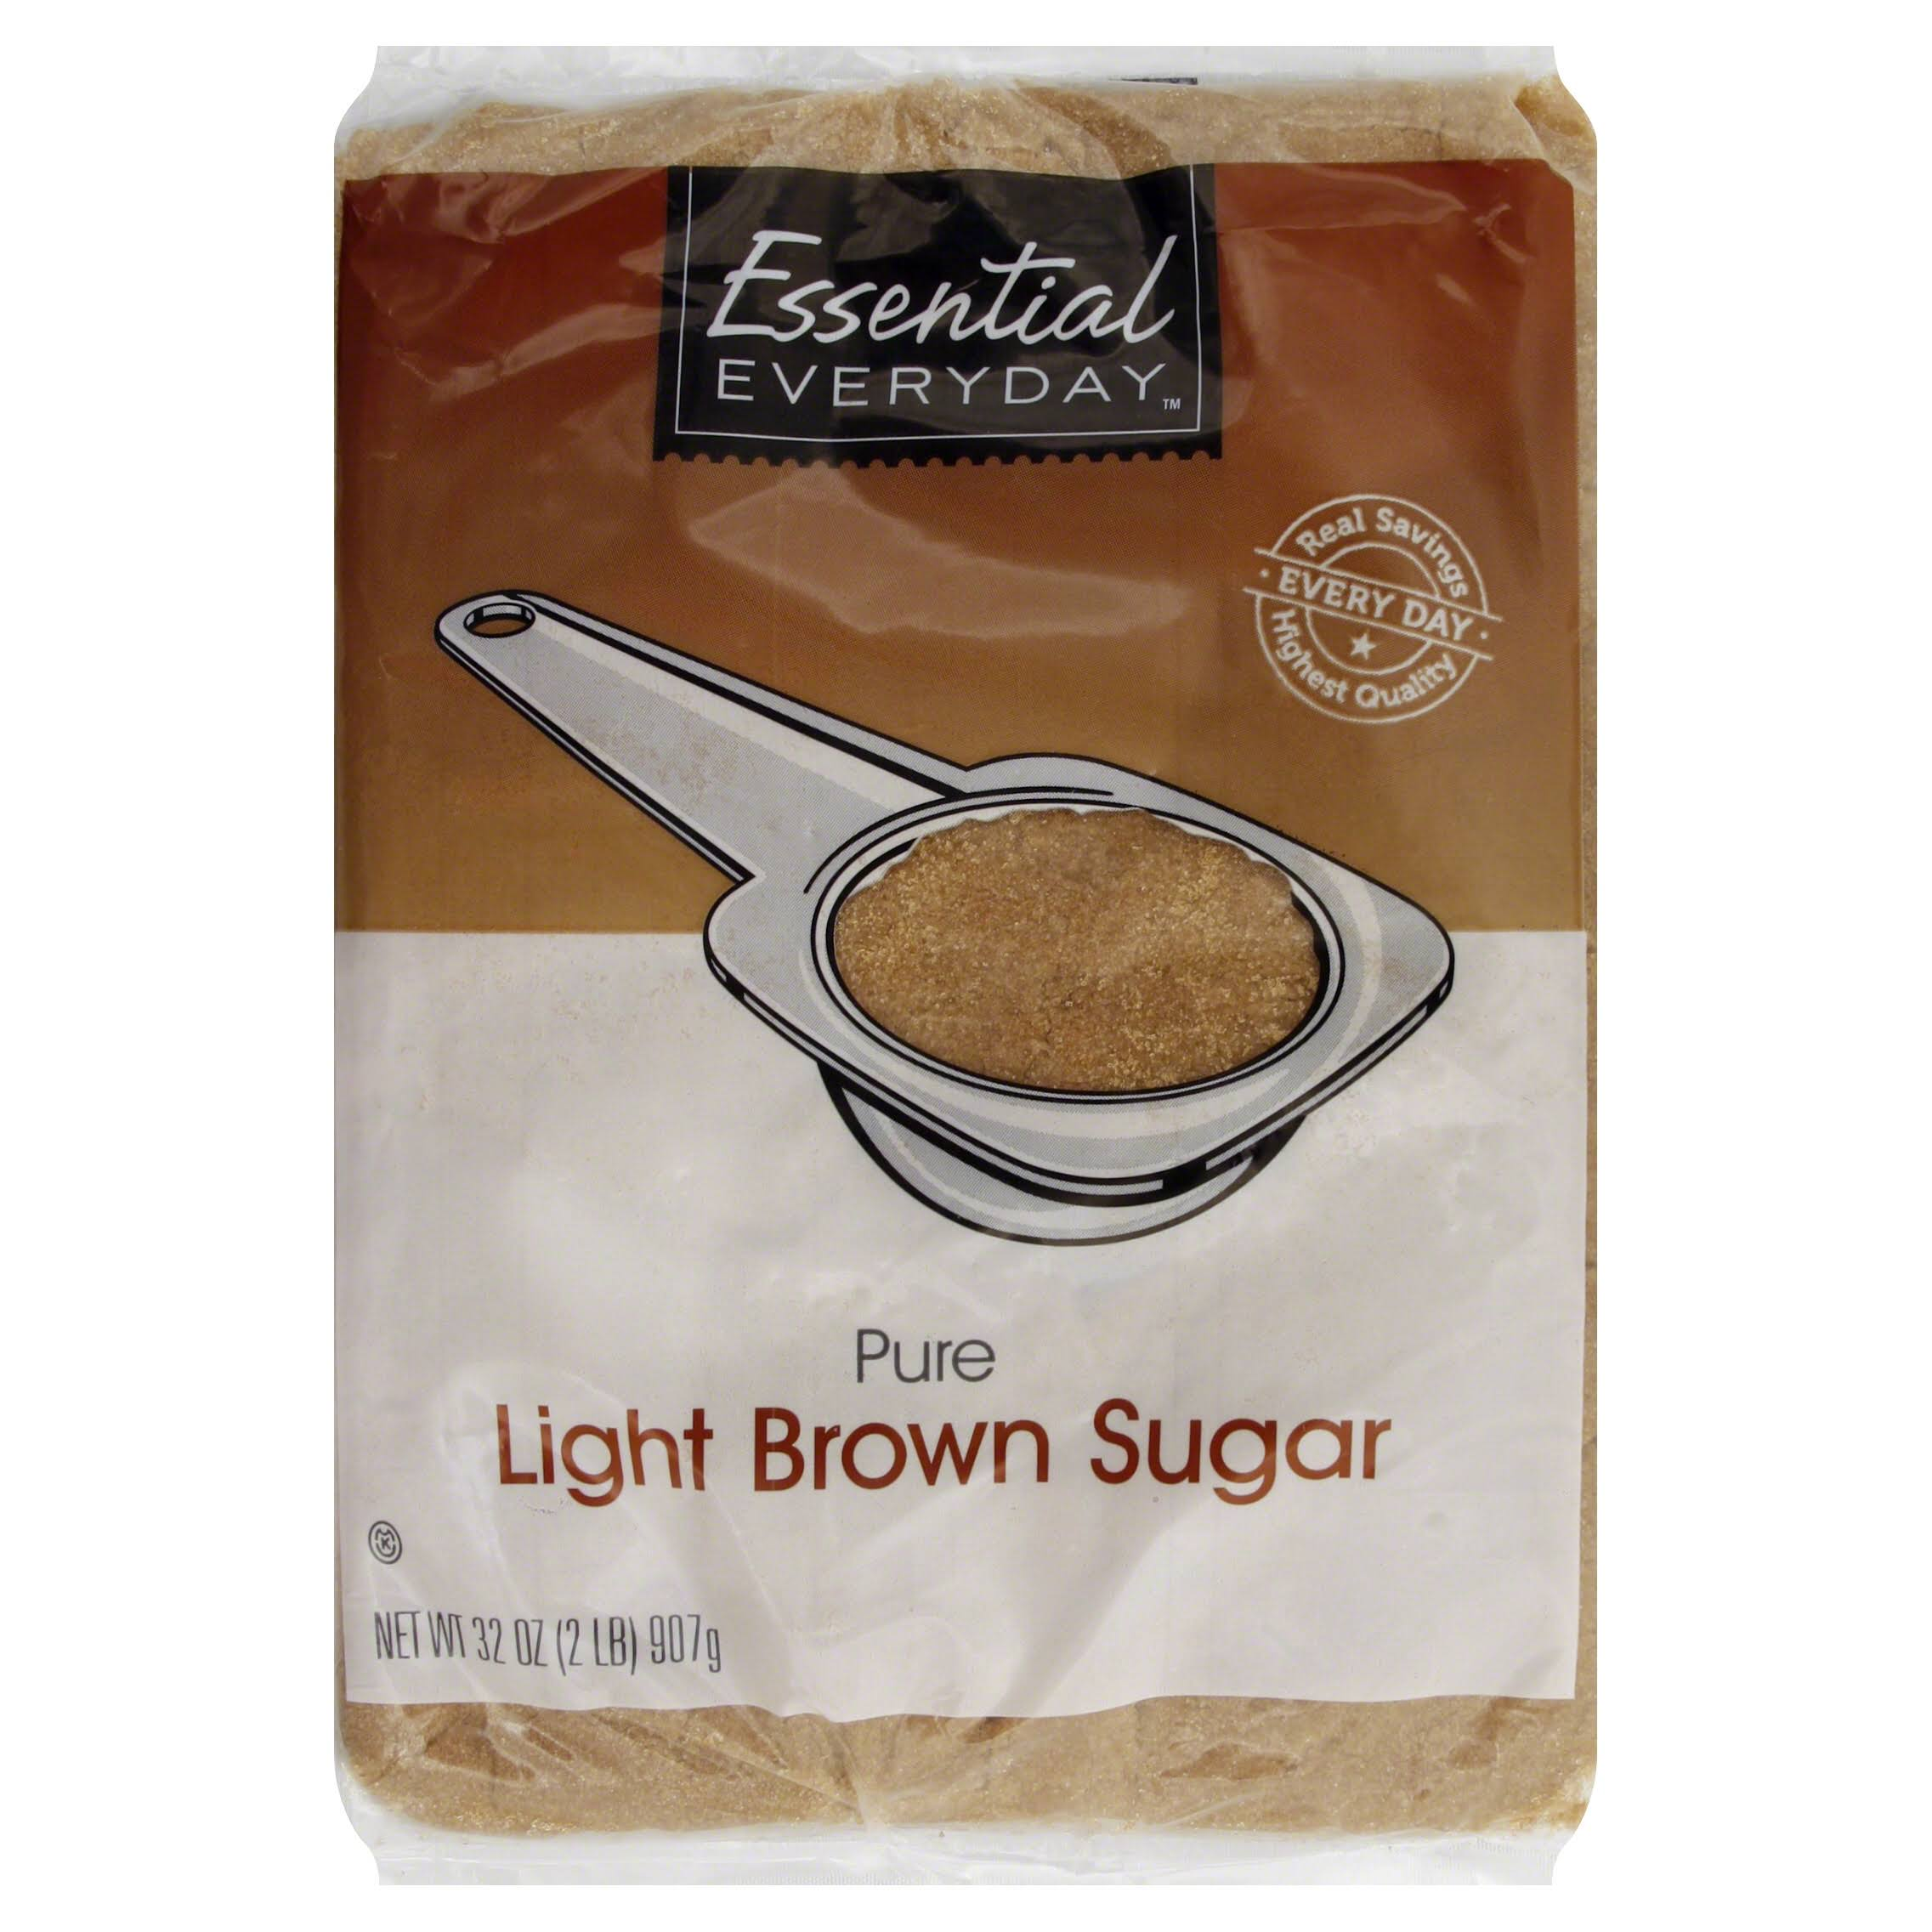 Essential Everyday Brown Sugar, Pure, Light - 32 oz